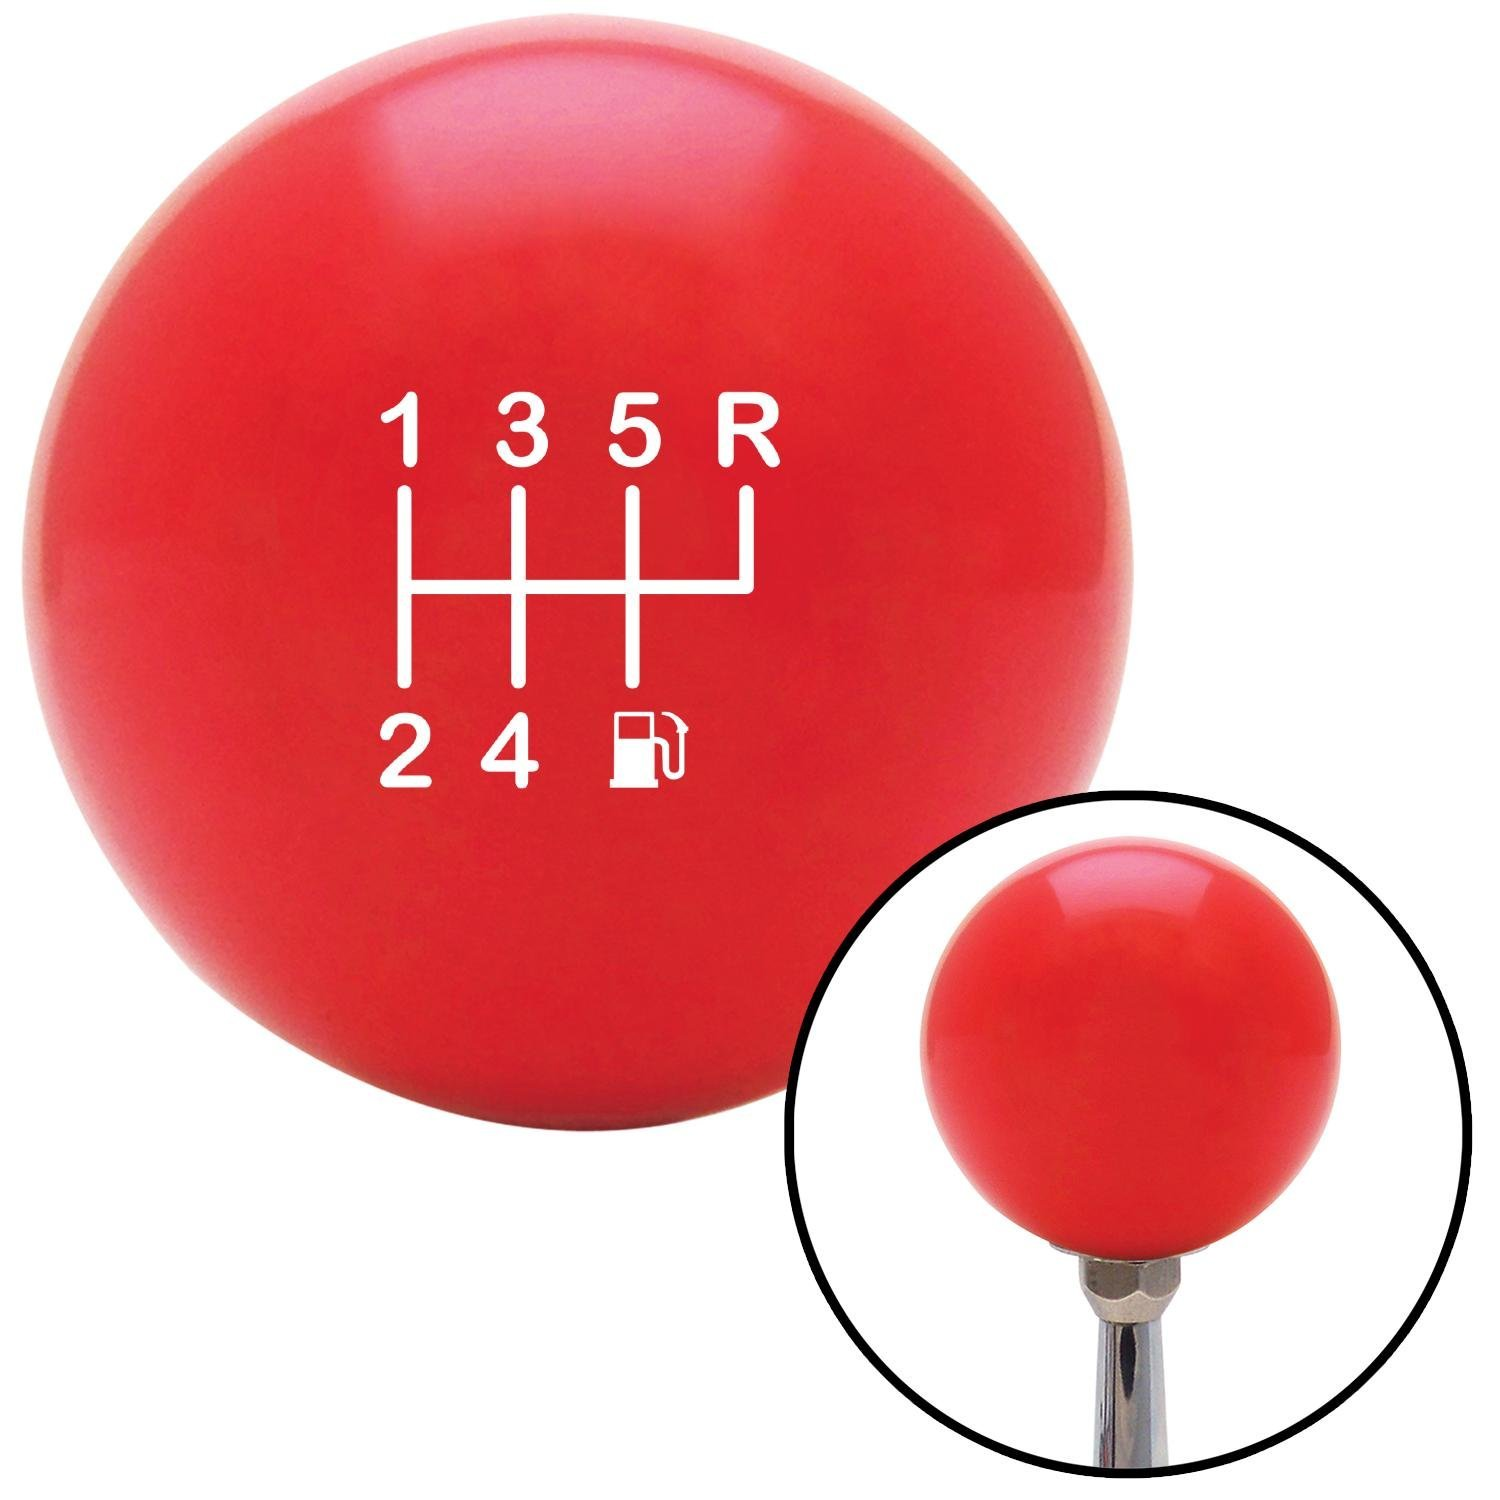 Company White 6 Speed Shift Pattern - Gas 26 Red with M16 x 1.5 Insert American Shifter 271956 Shift Knob